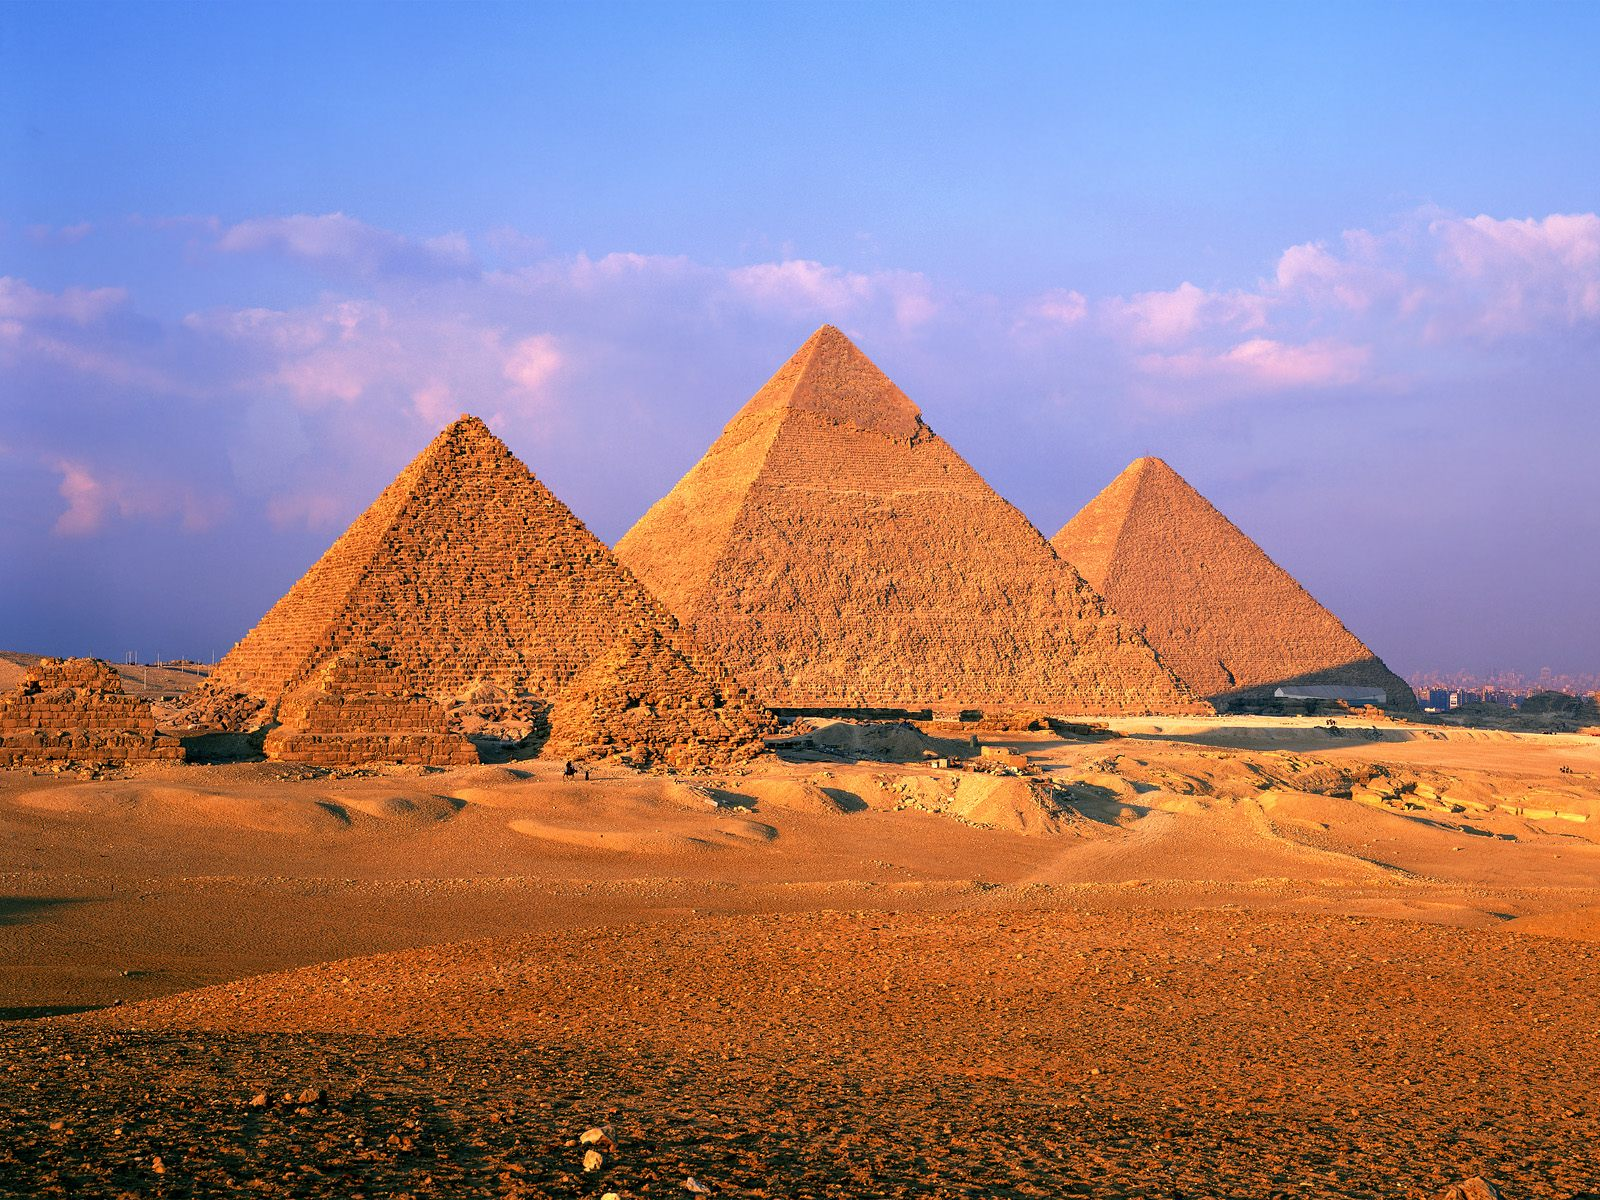 Pyramids of giza 10 interesting facts about the great pyramid of giza